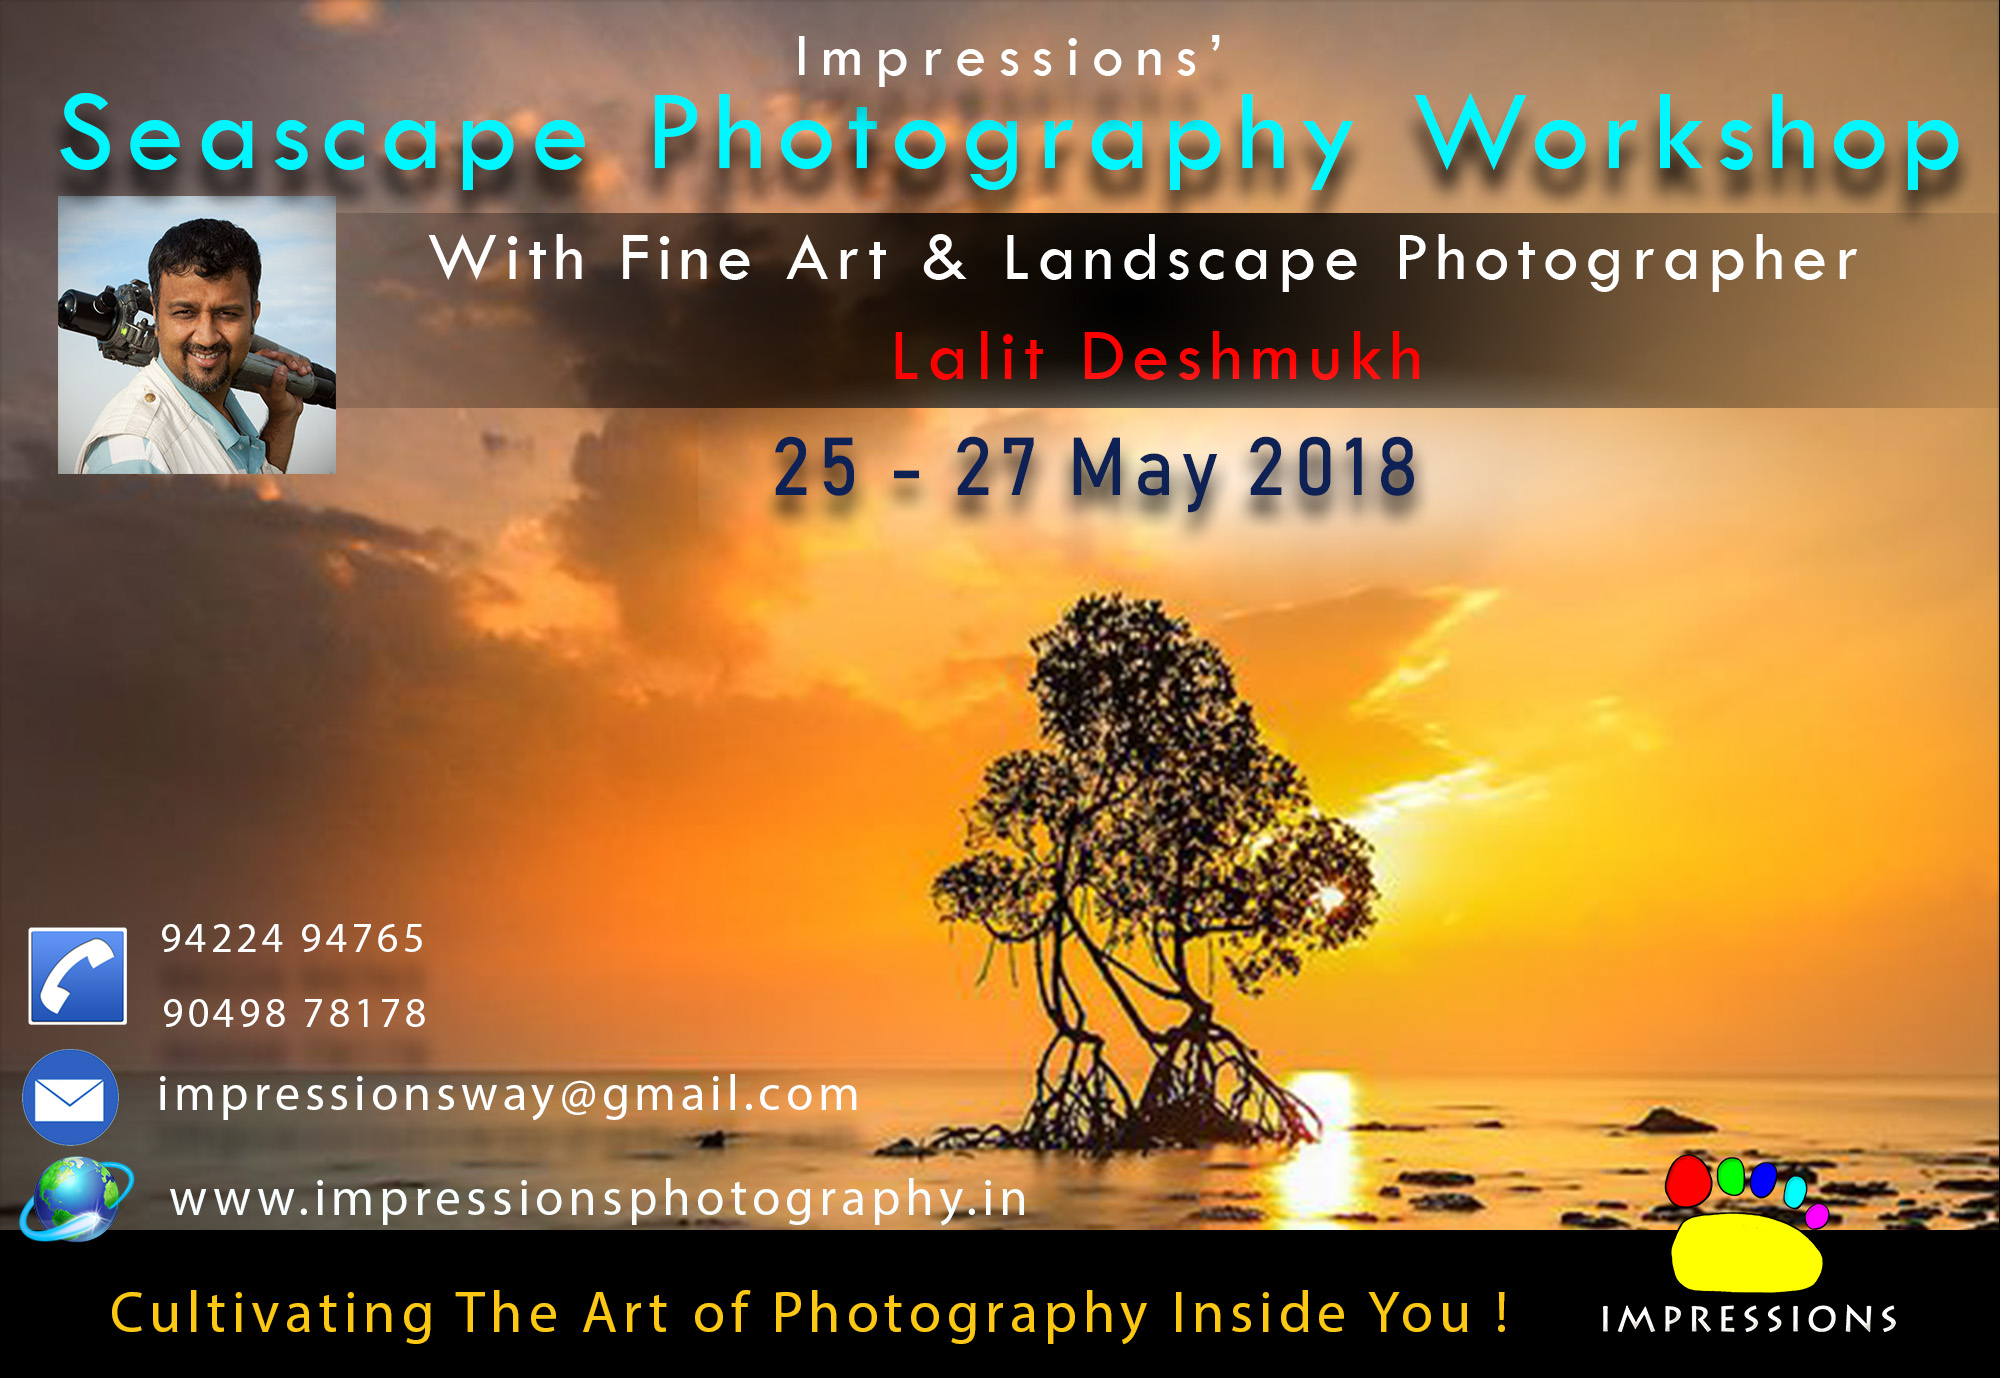 Greetings my fellow Photographer friends or Nature/Travel Enthusiasts! This is Lalit Deshmukh. Every year since 2010, I am taking only one exclusive Seascape Photography Workshop to the beautiful Kokan. This is a combination of learning through workshop and the fun from the travel. I make effort to have it in a different location each year for everyone to come, travel and experience various parts of Kokan and learn as I travel with my participants to the edge of the sea. This year, I plan to stay in Central Kokan area, near Narvan or Hedavi and photograph the coast nearby. My sole intention is to share my secrets related to composition, make you capable of taking long exposures, understanding what to see, visualize, and also take care during the seascape Photography. This is a focused workshop :-) There will be multiple sessions, starting with preparatory session in Pune, on field sessions on the shore, learning and critique sessions when we return to the hotel. We will also be making sure that we have time to have good Maharashtra food, fun and informal gathering of everyone. Stay will be decent, but a typical Kokan style, nothing fancy. :-) Mostly triple sharing. What are the take away from this Photography Tour? :-) Special Insight session on Landscape Photography. Various techniques of Seascape Photography (Long exposures, Moving clouds Crashing waves, Landscape composition). Exploring and Capturing Konkan lifestyle/architecture/village scenes Critiquing sessions and On field photography techniques. Registration: It is simple, you can pay cash or cheque or pay online to reserve your seat. The number of seats are limited and we will book your place, soon as the payment made. Early you do it, better it helps us to manage the logistics. I expect to have only 10 participants. Register by 1. Cash [call and pay fees at office] in Kothrud, Pune 2. Bank Account Details For Online Registration: please message me to get this Dates: 25 to 27 May 2018 Fees: Rs. 8900/ - ( If